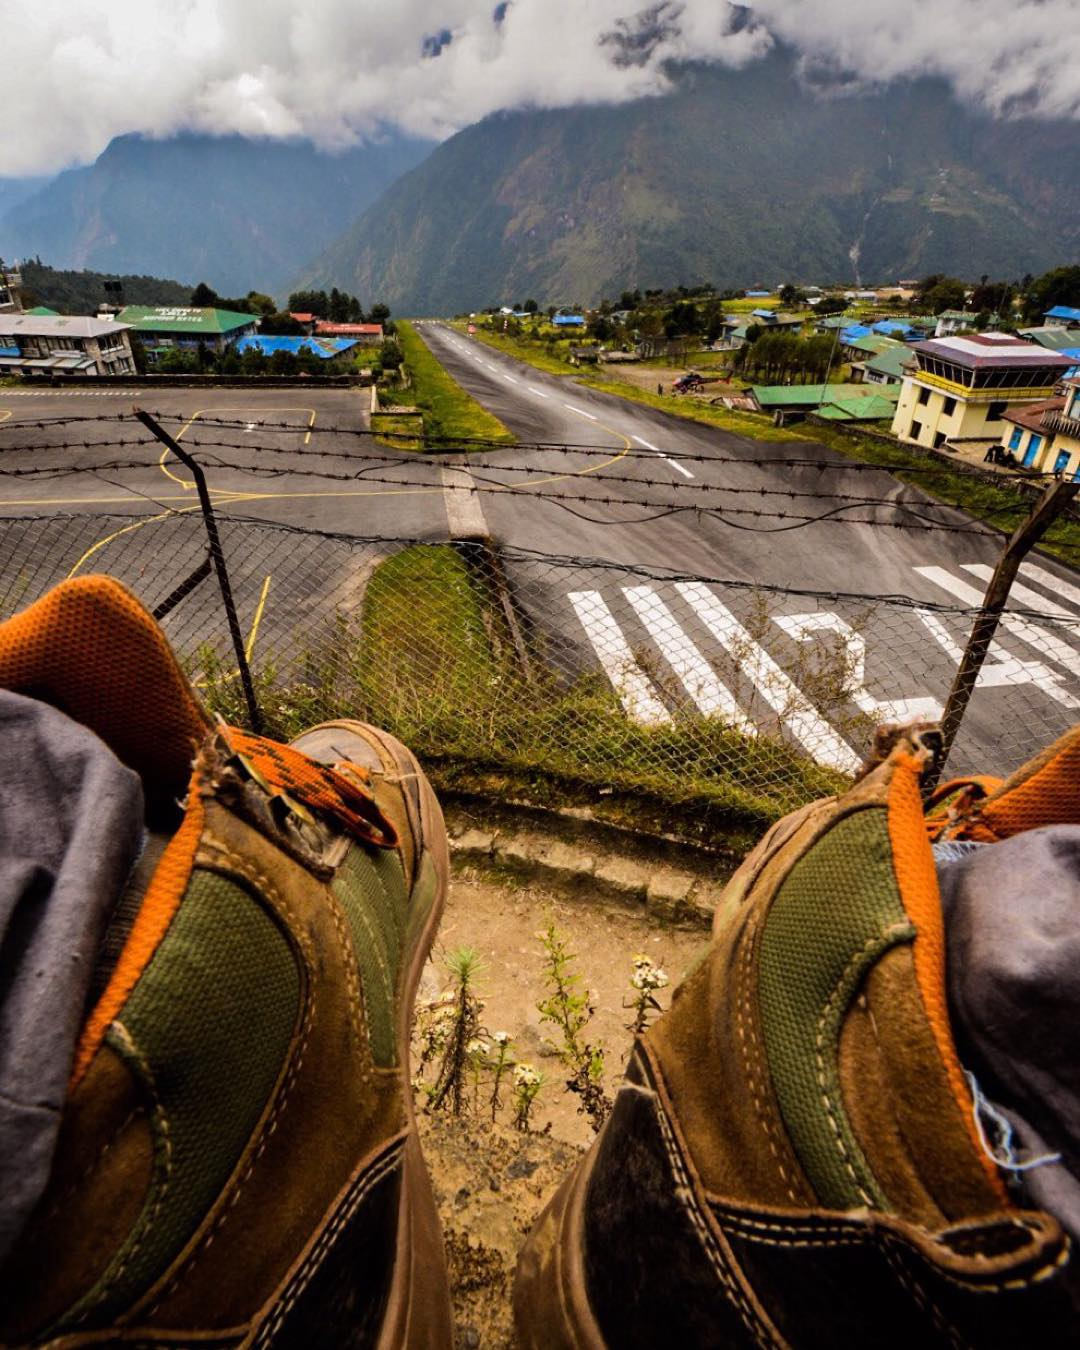 Perched high above the world in Lukla, Nepal. @jeff.wols ⛰ #getoutthere #adventureworthy